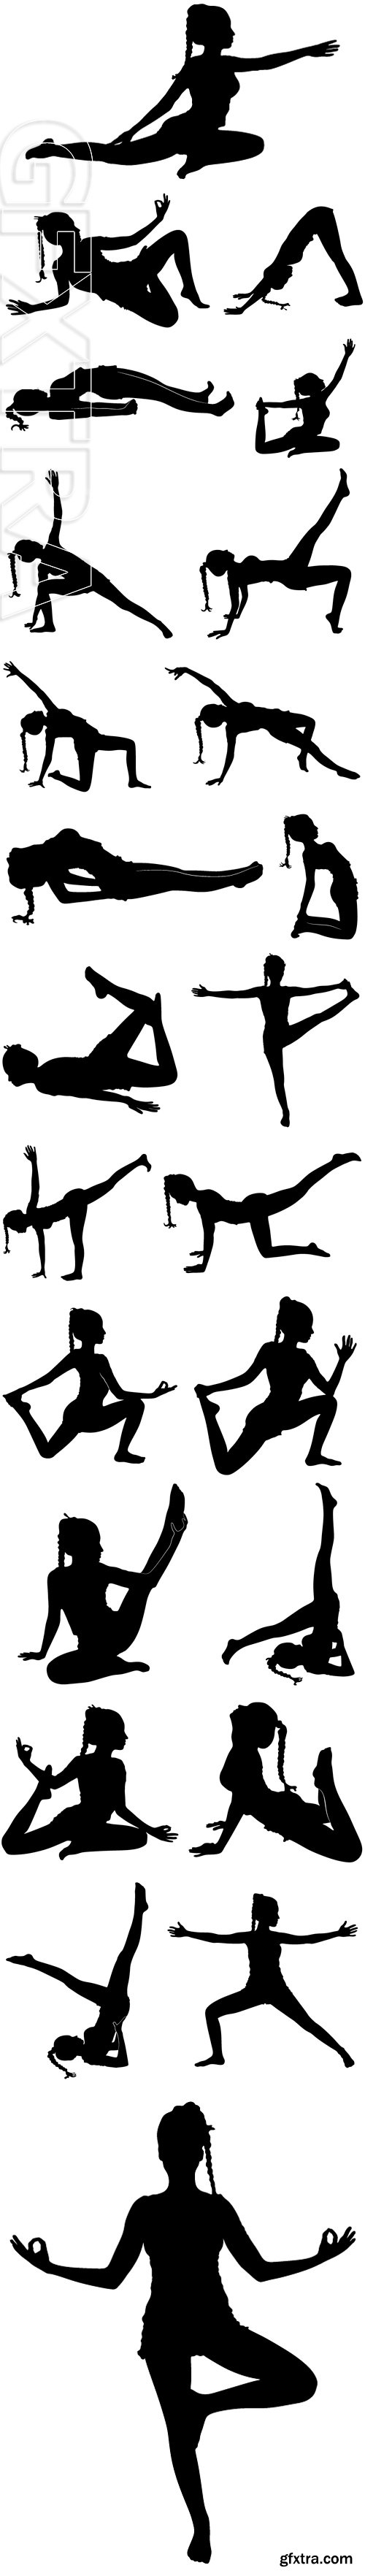 Stock Vectors - Yoga - young beautiful woman in pose isolated on white background